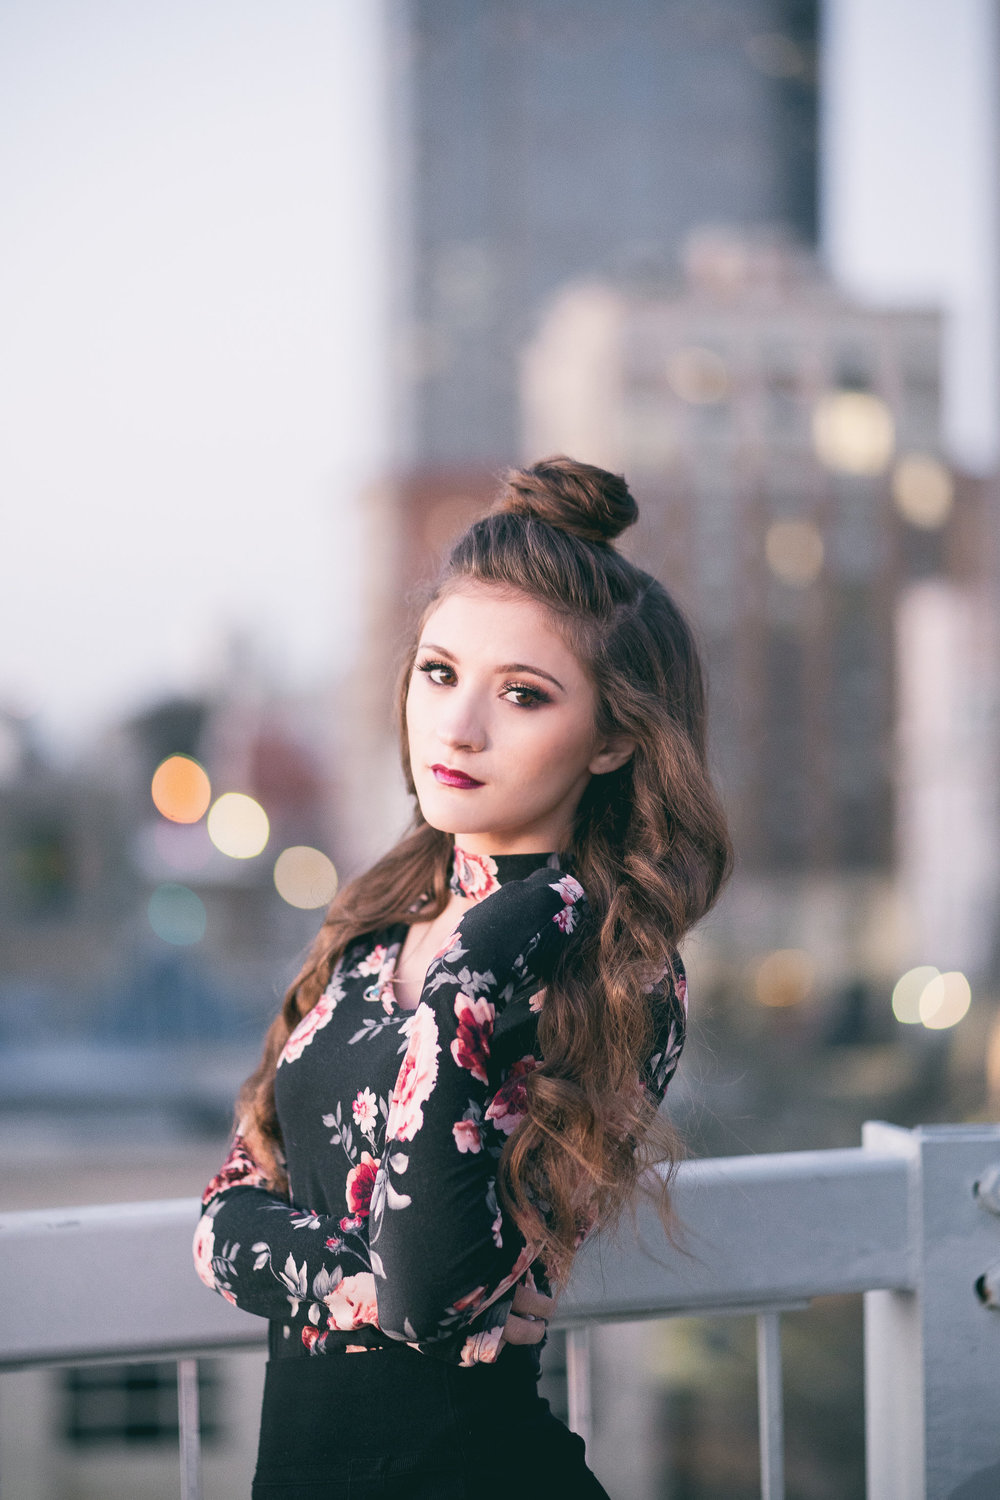 Such an epic session! Raven rocked the entire time and I LOVED being her HIGH SCHOOL SENIOR PHOTOGRAPHER!